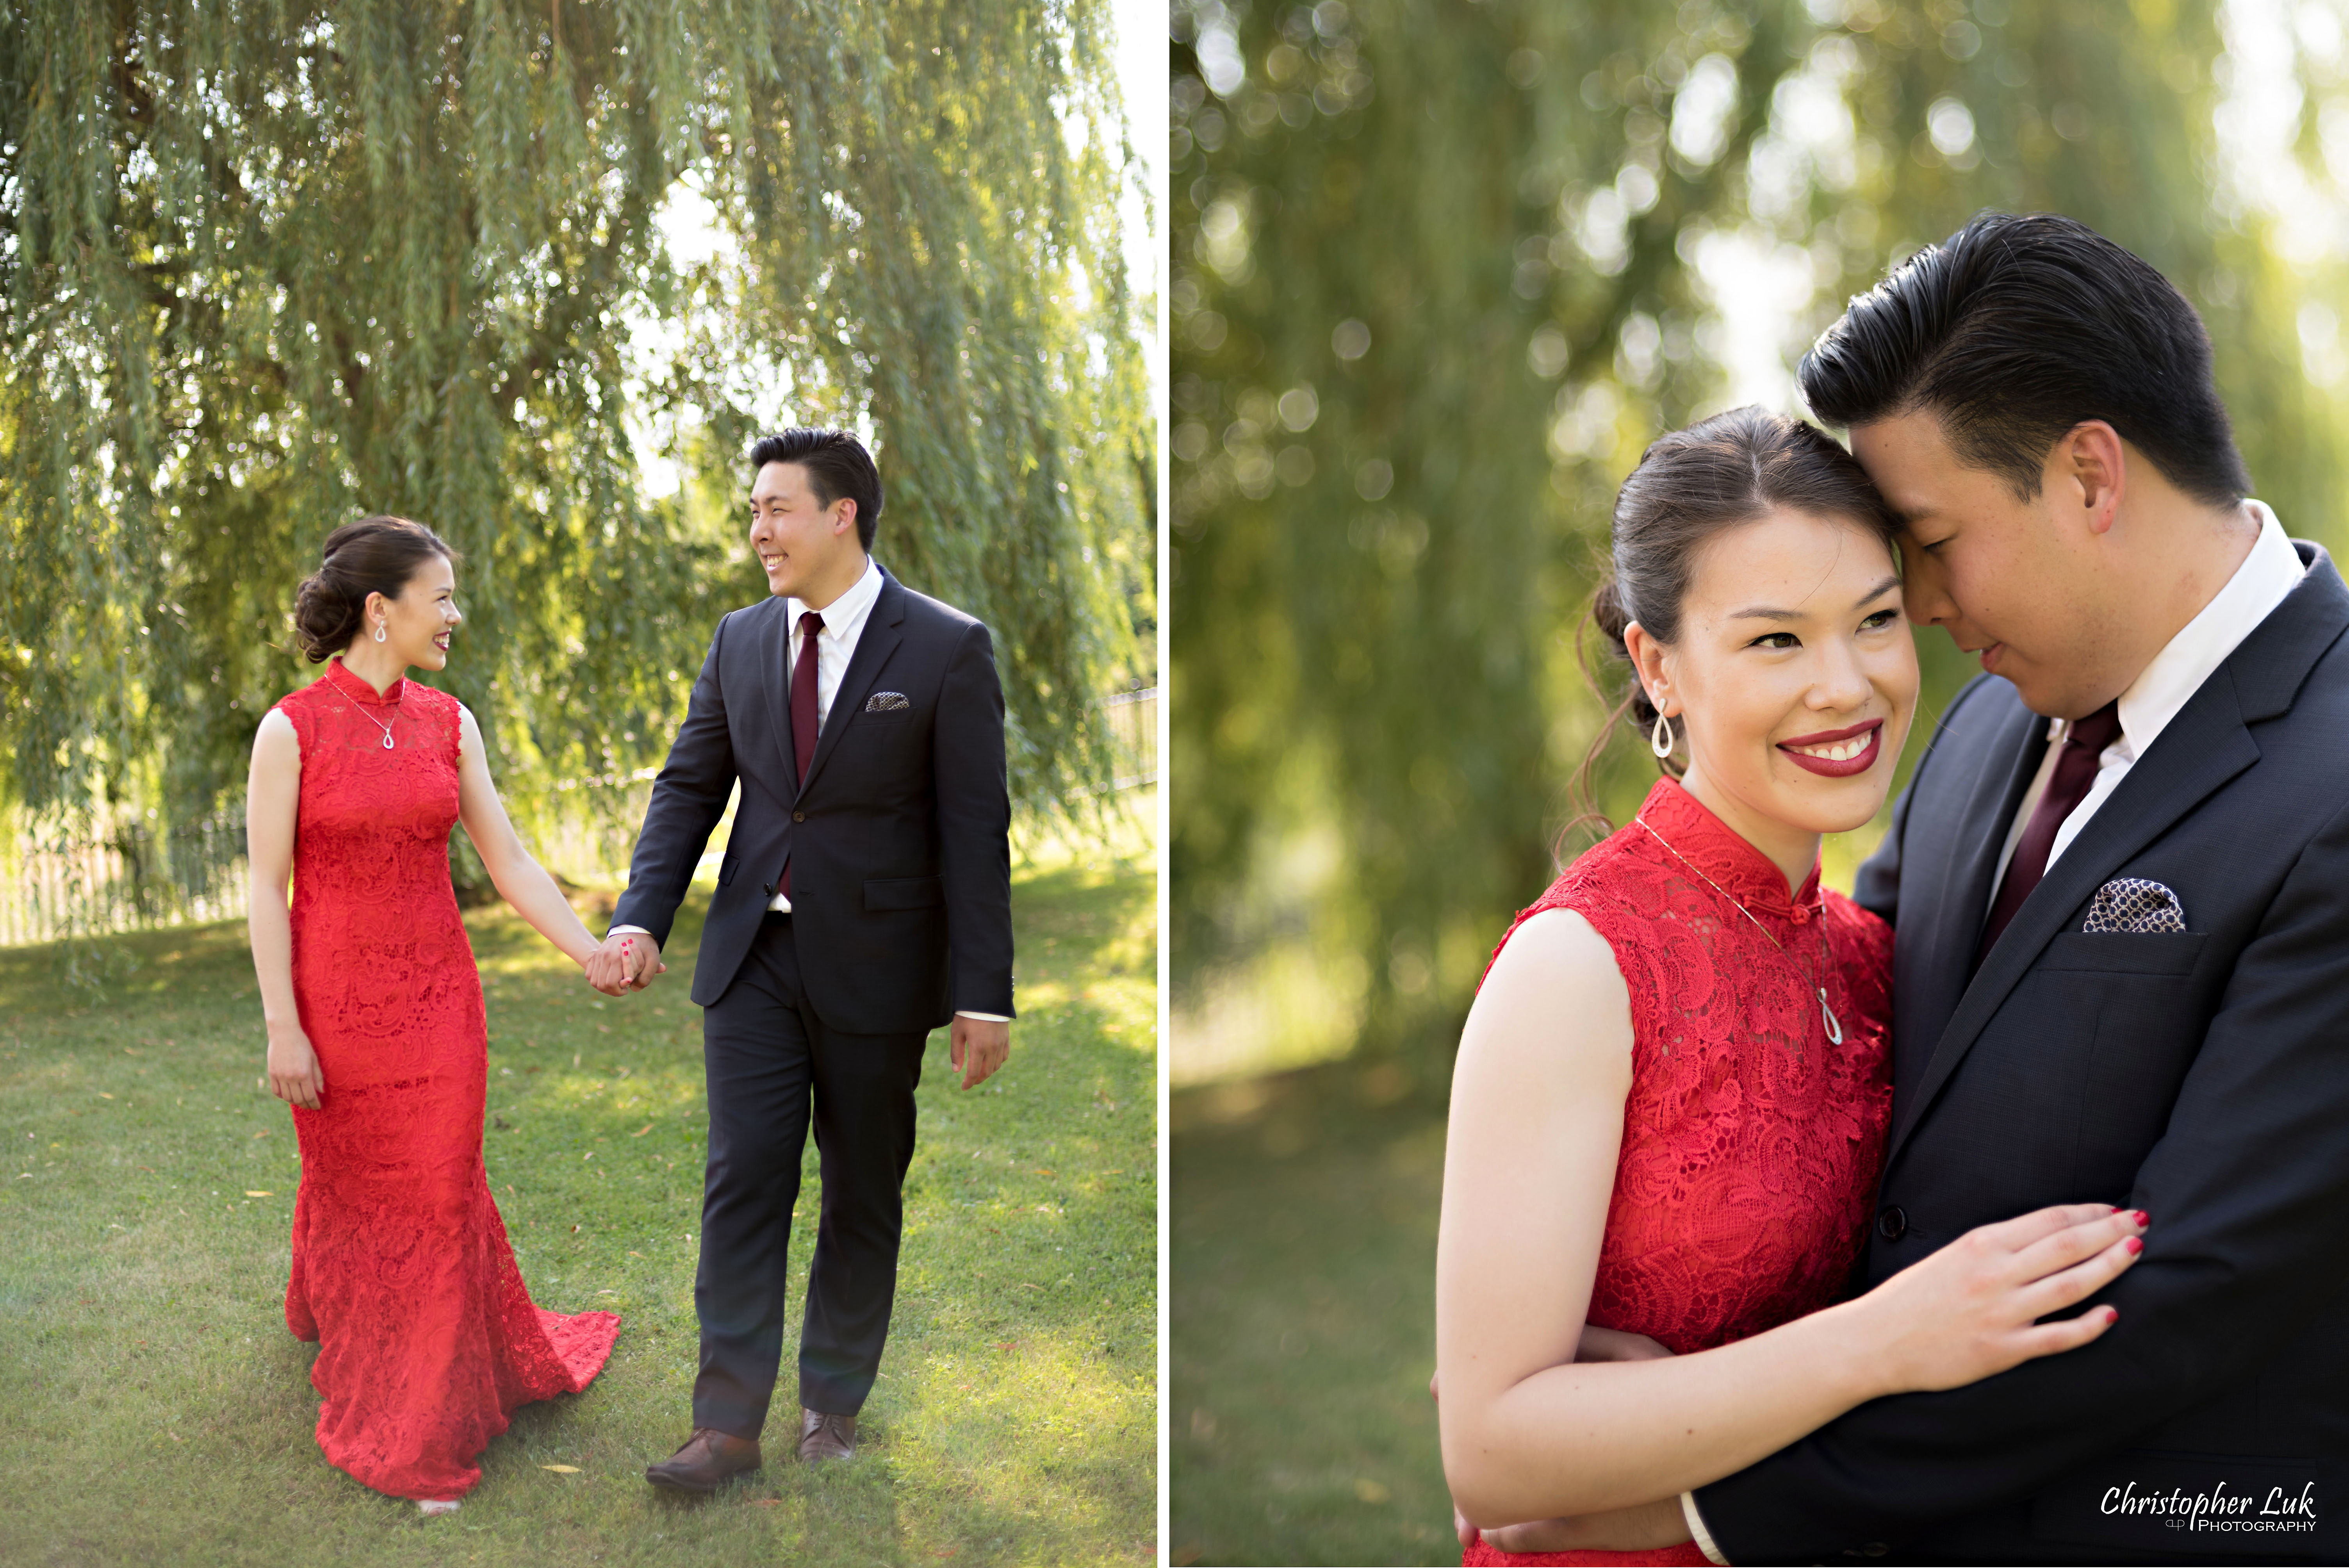 Vannessa and Daniel's Summer Outdoor Backyard Engagement Party / Family Tea Ceremony Celebration